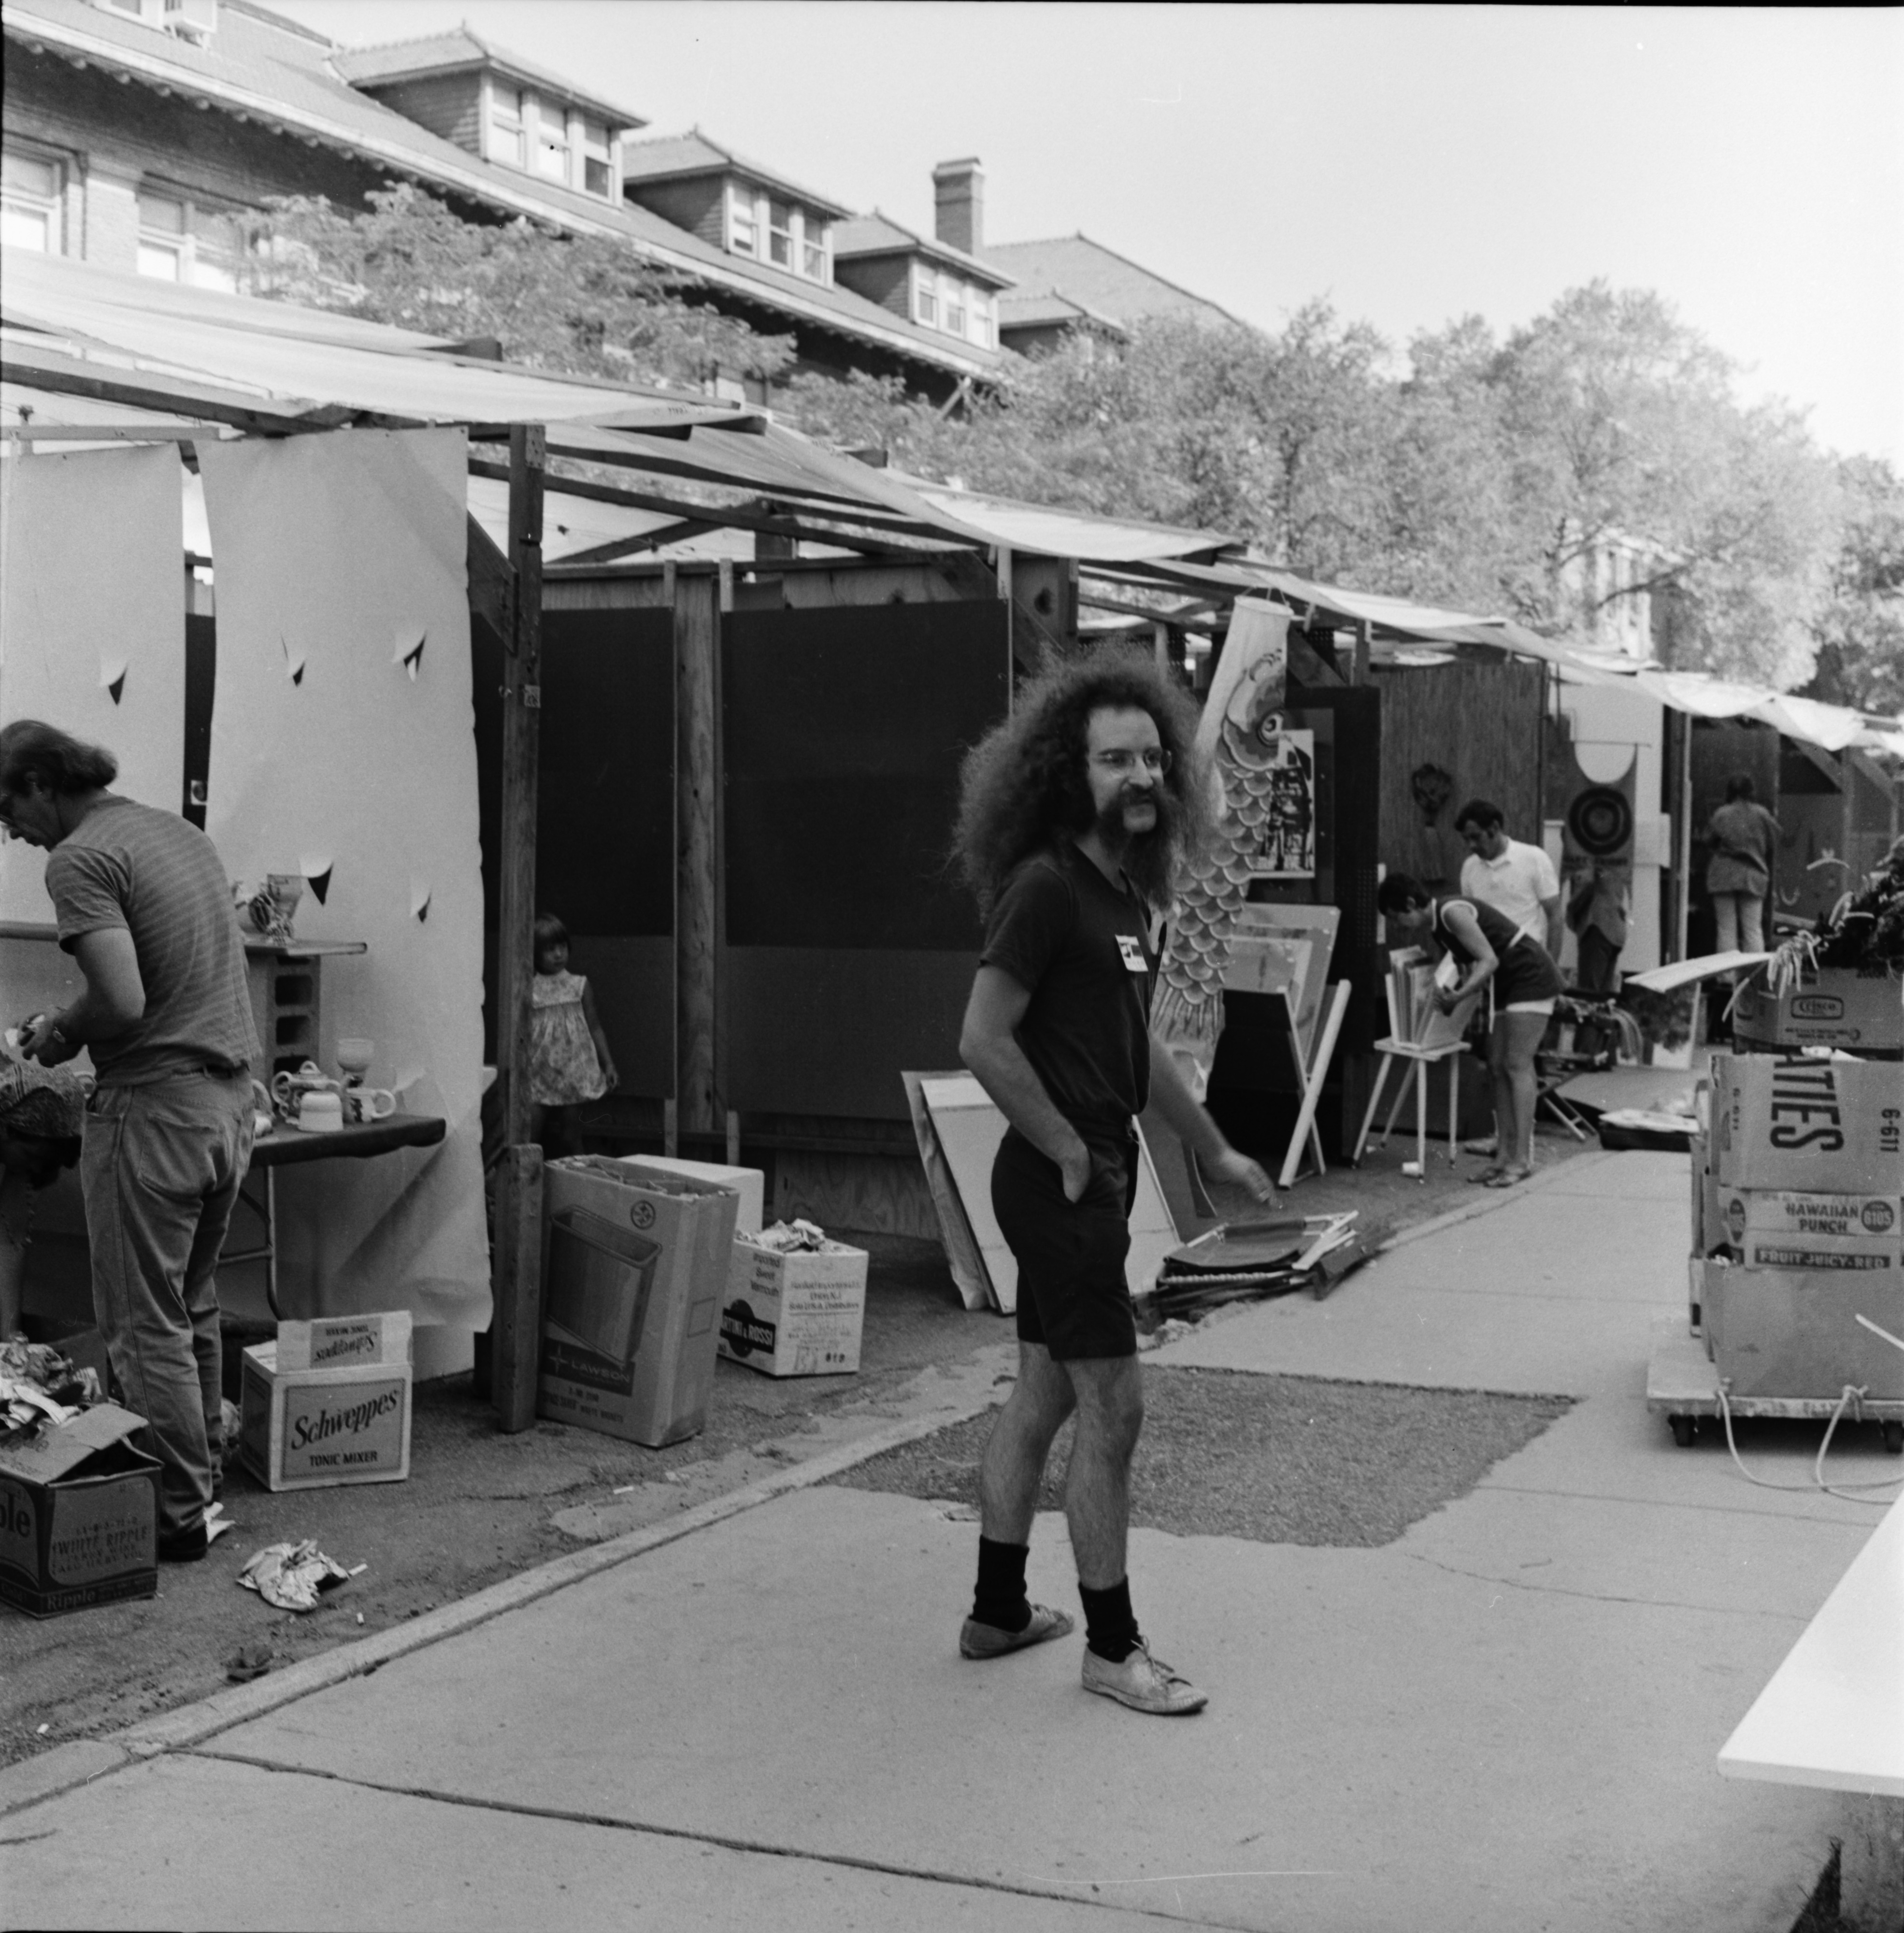 Artist at the Ann Arbor Street Art Fair, July 1971 image